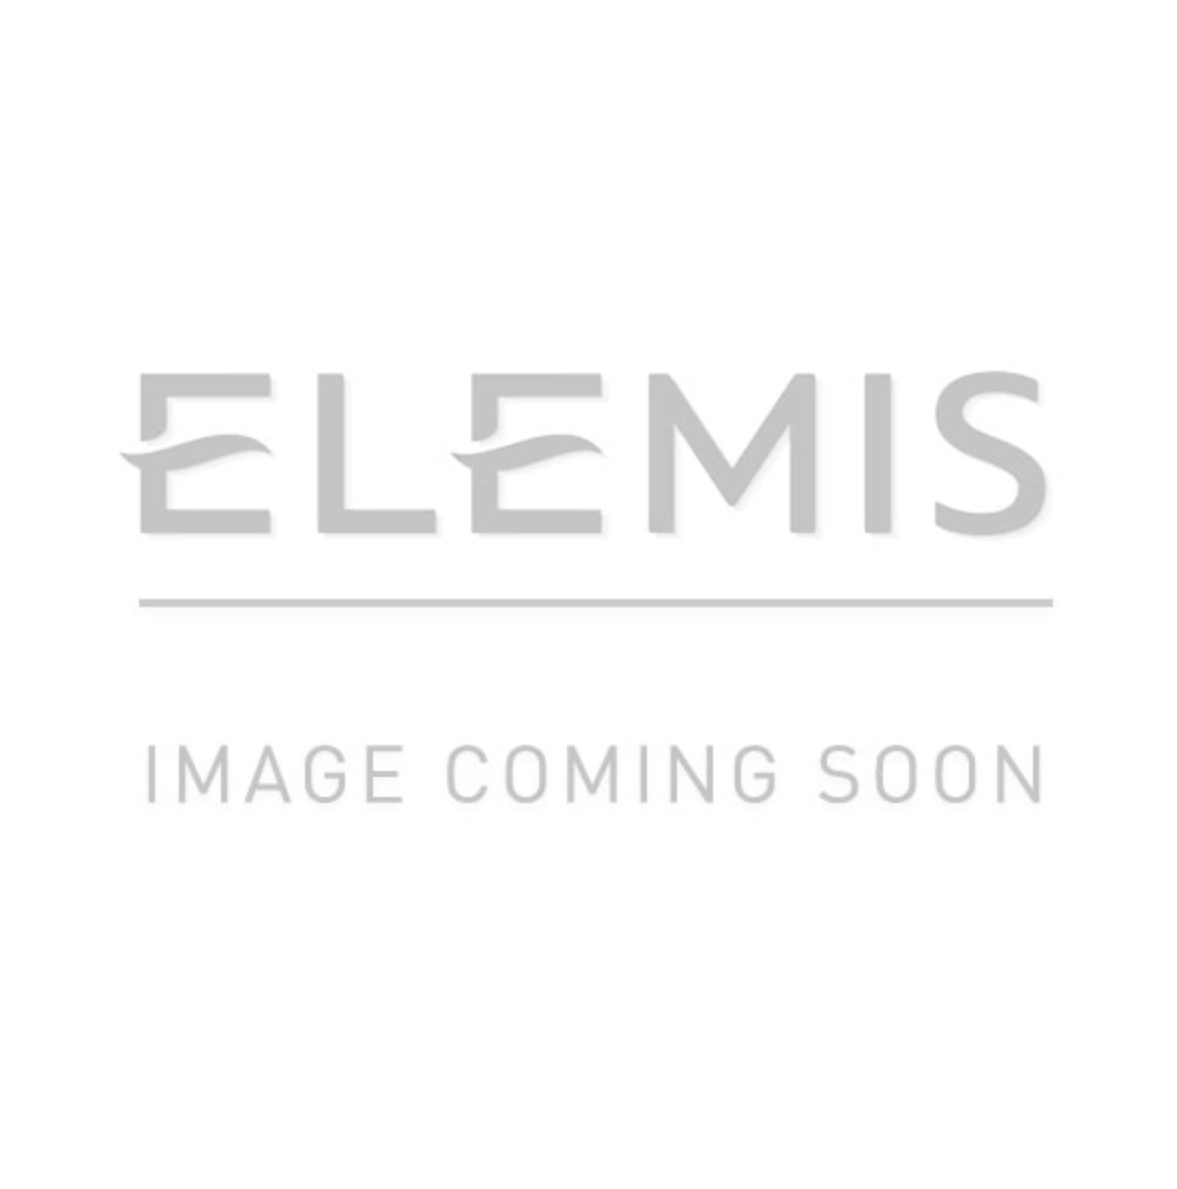 Christmas Gifts 2019 For Her.Elemis Christmas Gift Sets 2019 Xmas Presents Gifts For